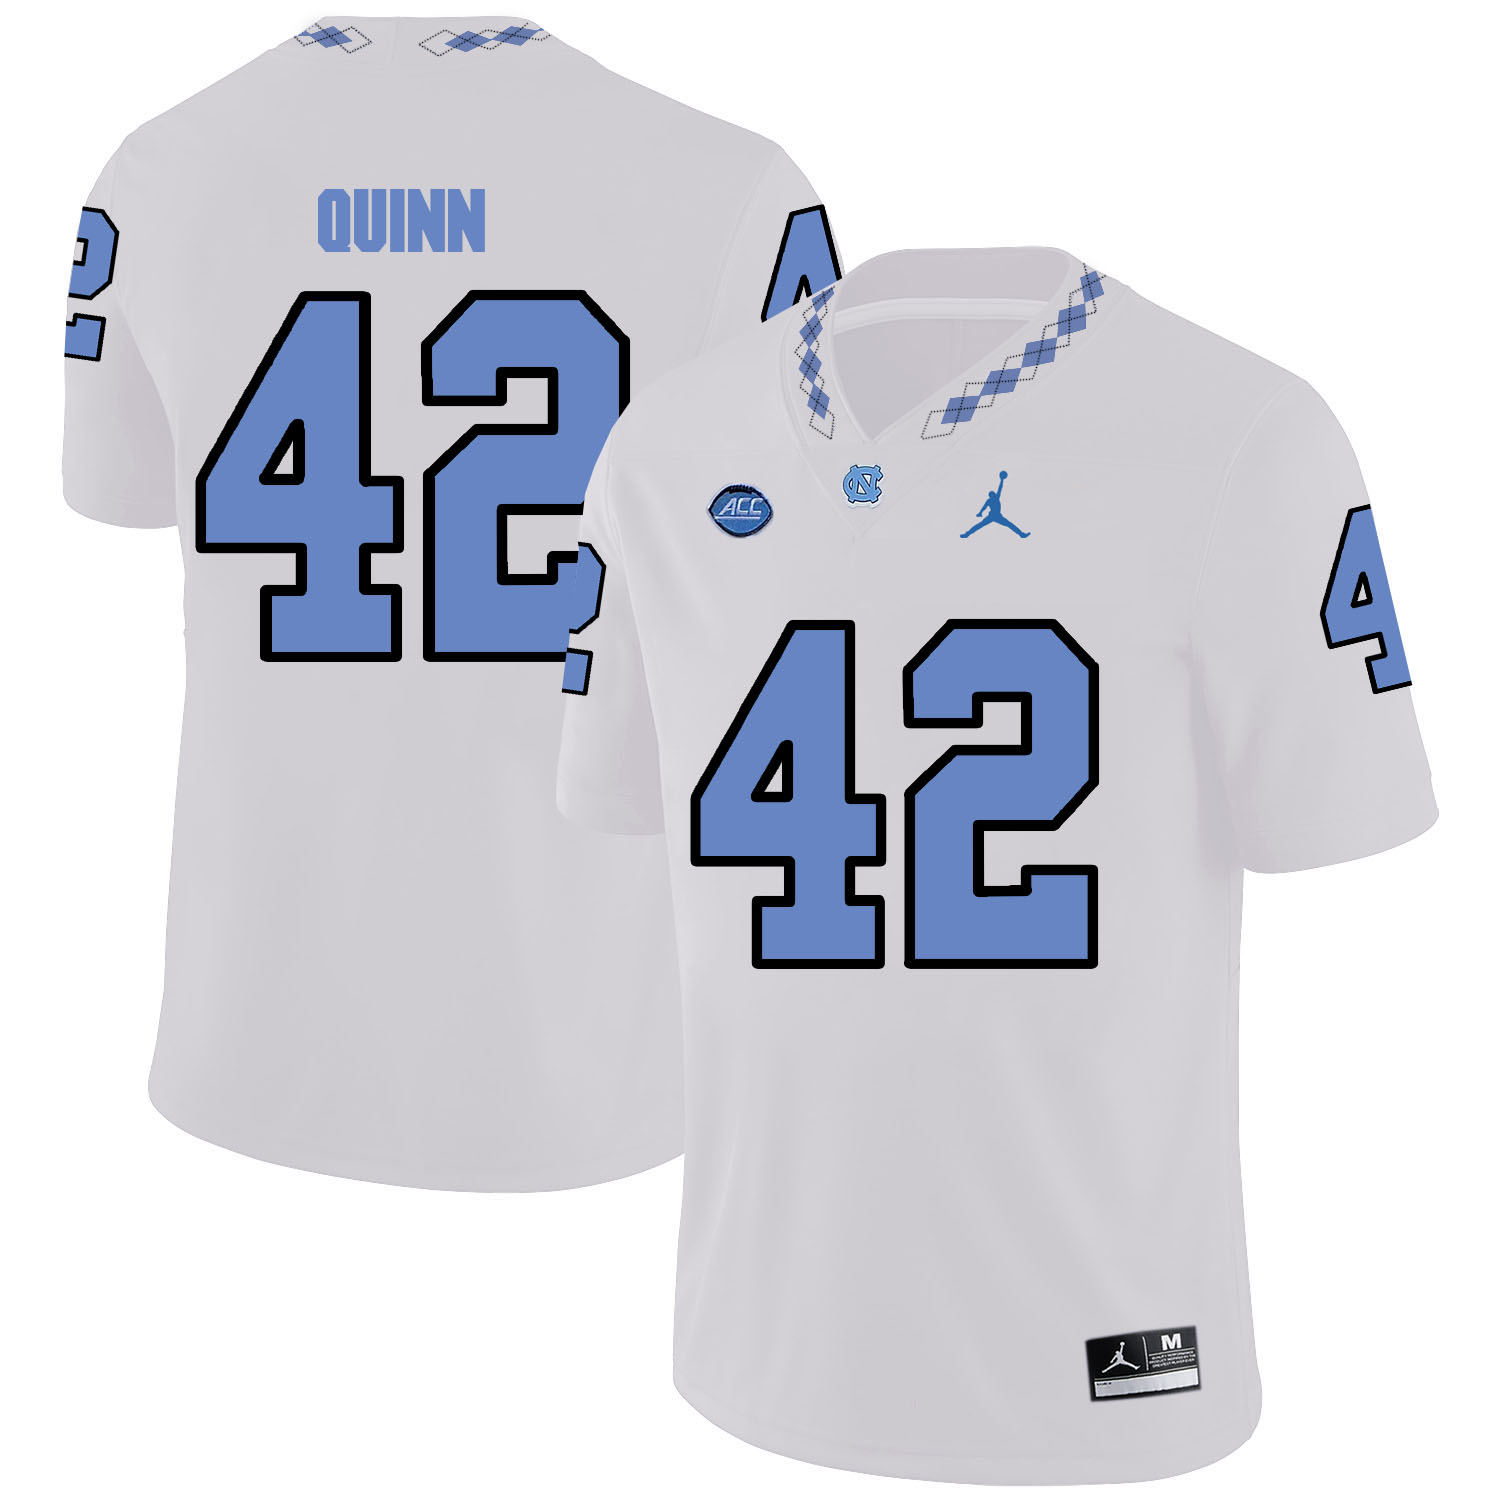 North Carolina Tar Heels 42 Robert Quinn White College Football Jersey